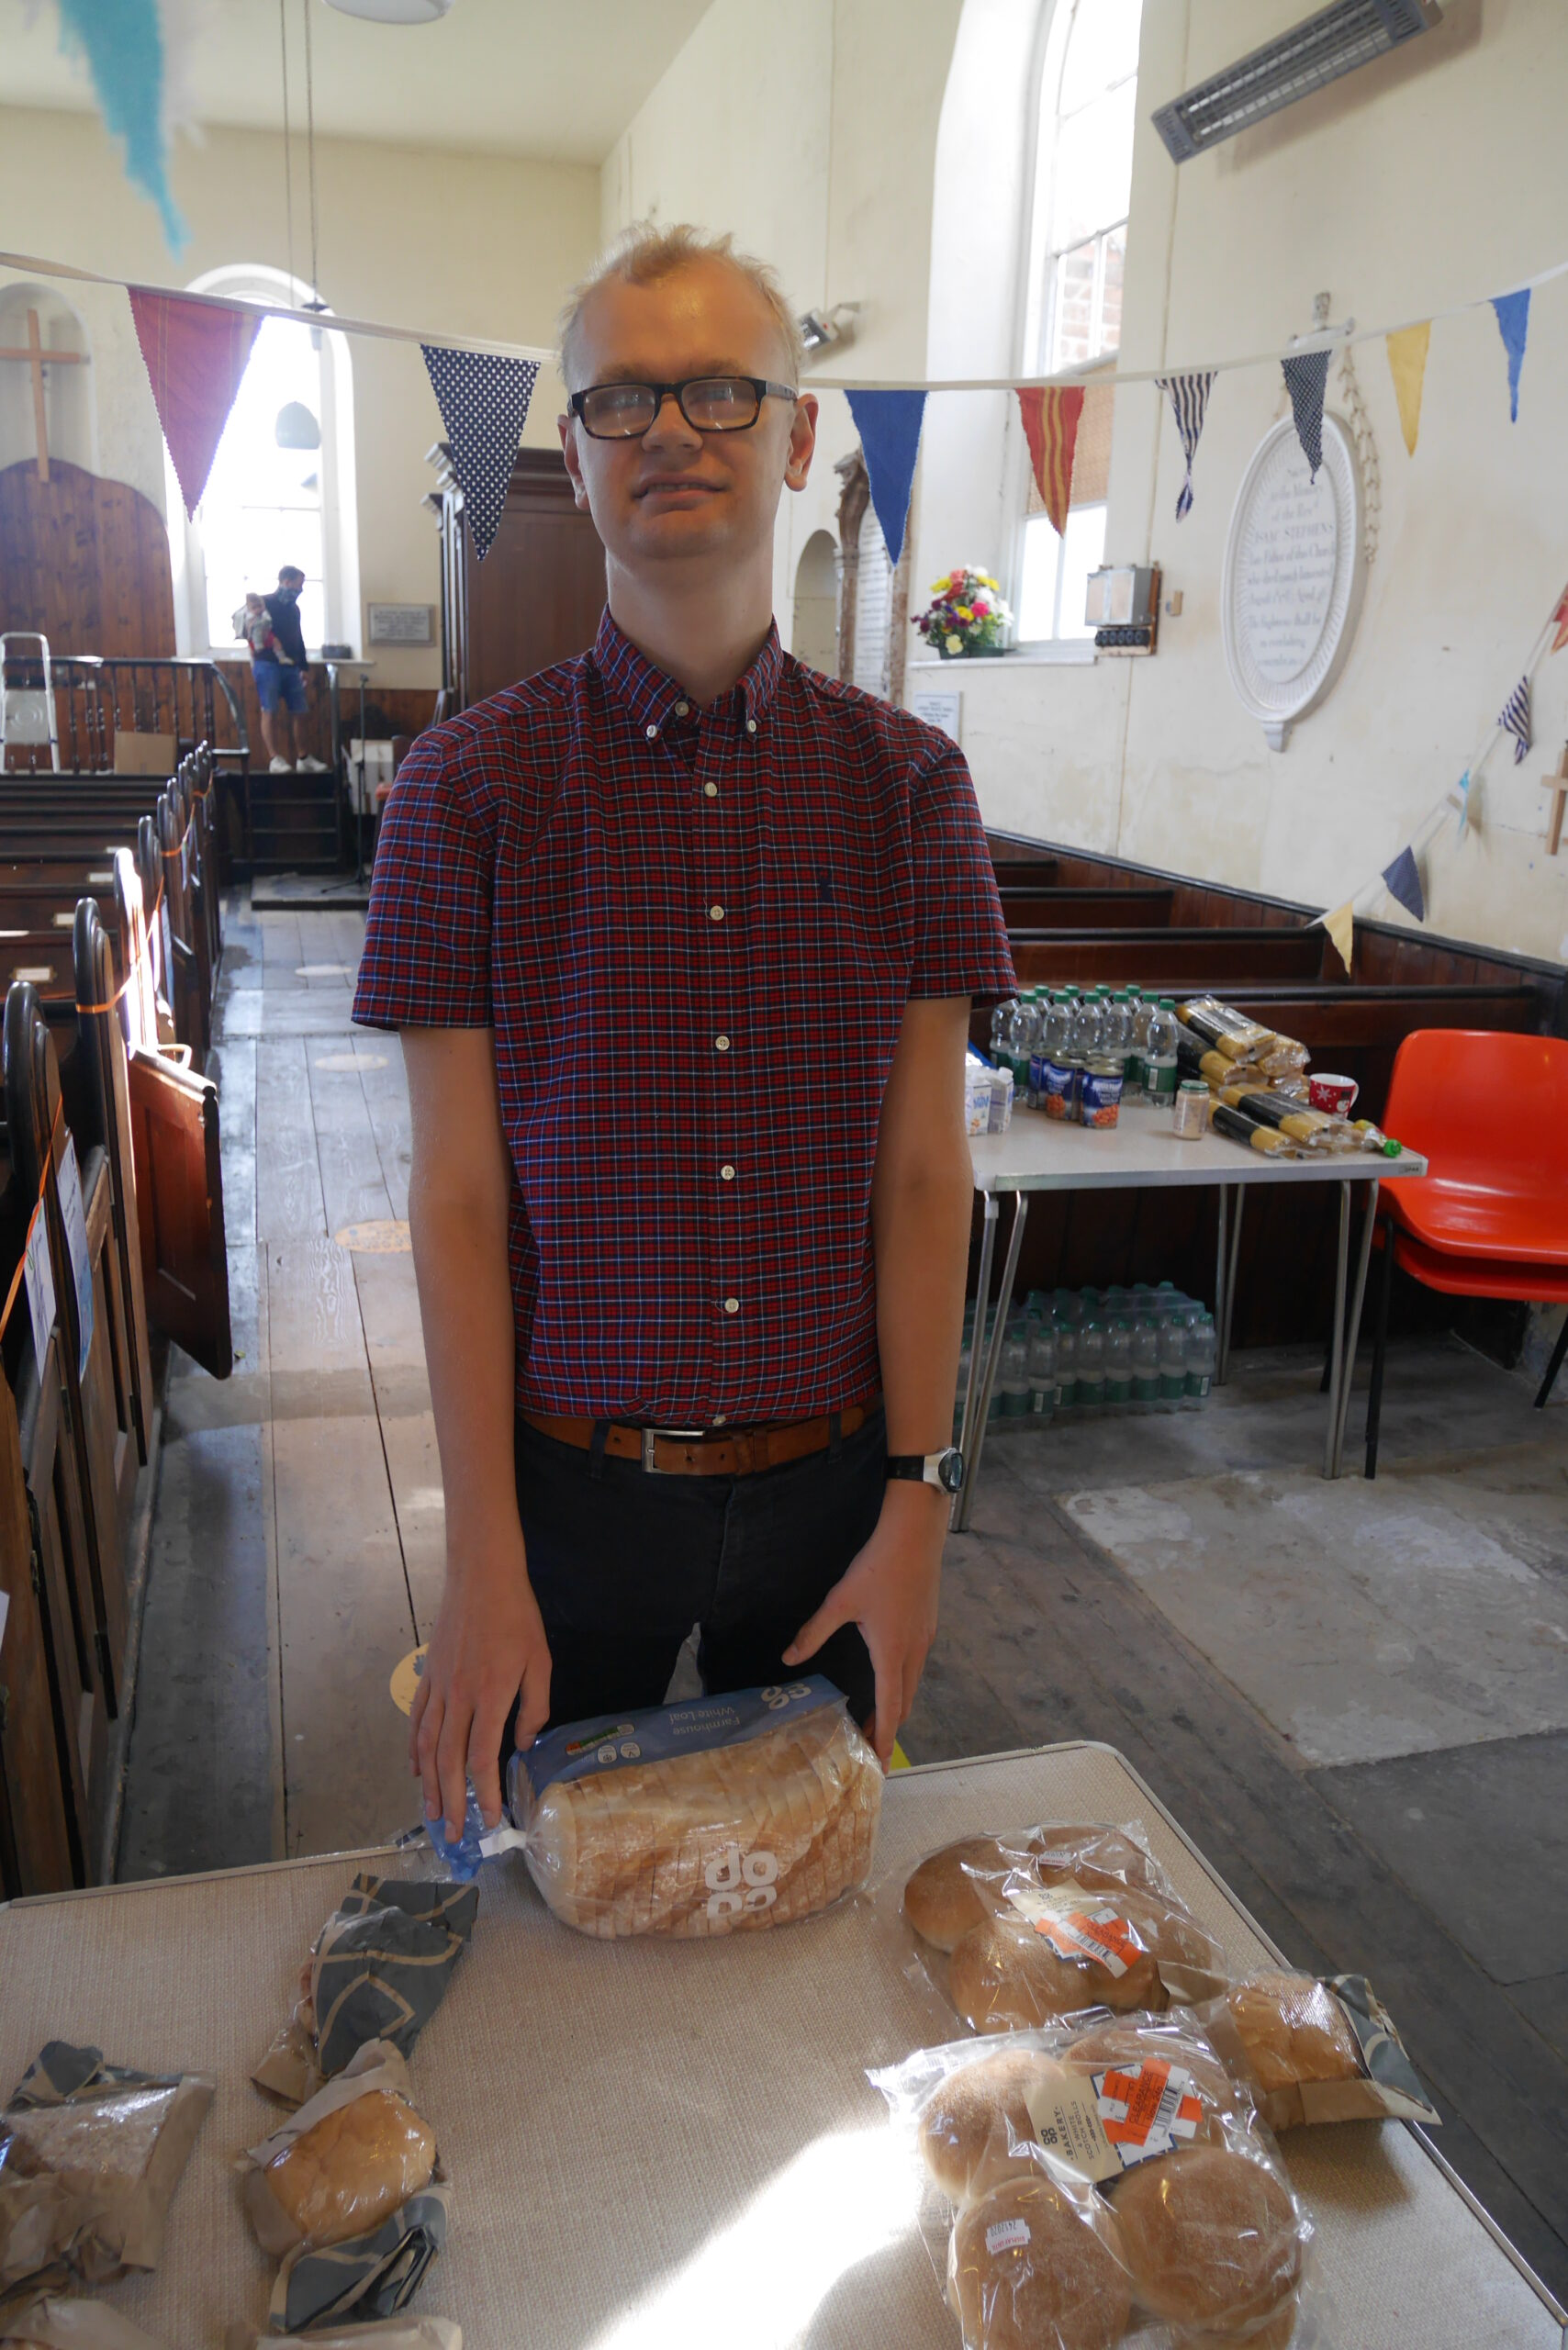 Max, helping sort food whilst working at Upton Baptist Church